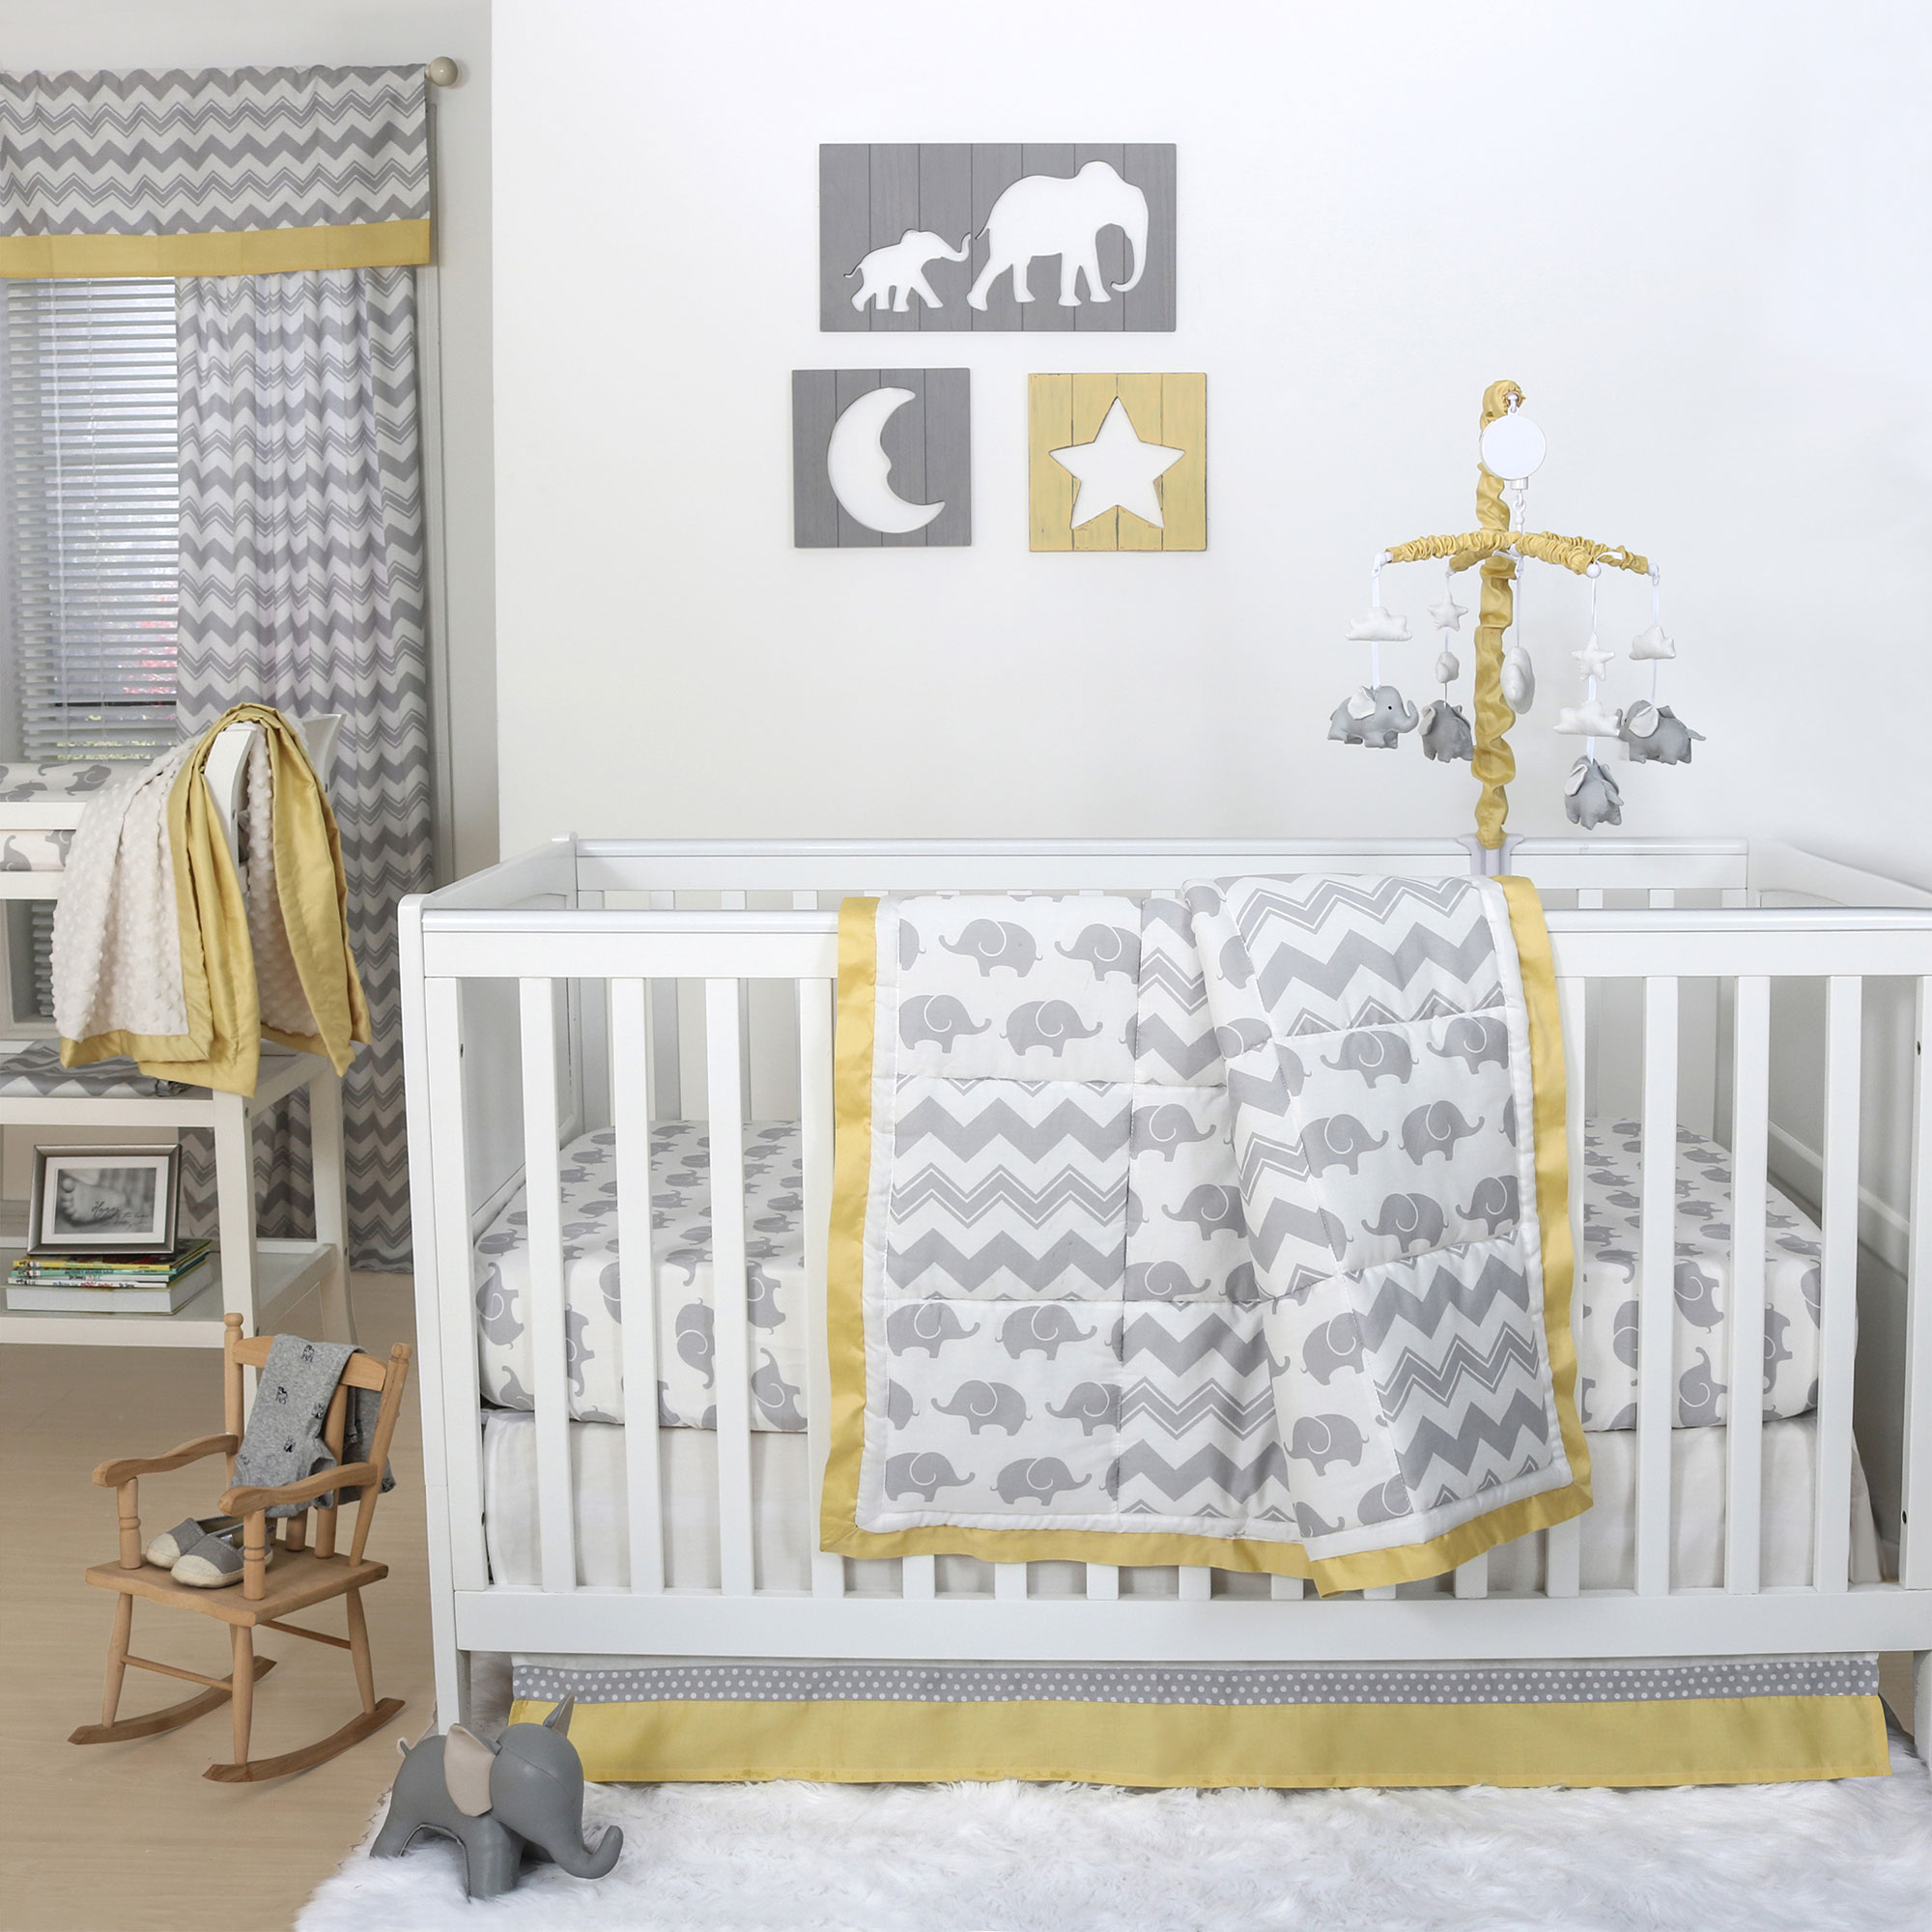 The Peanut Shell 4 Piece Baby Crib Bedding Set - Grey Elephant and Zig Zag with Yellow Trim - 100% Cotton Quilt, Dust Ruffle, Fitted Sheet, and Mobile